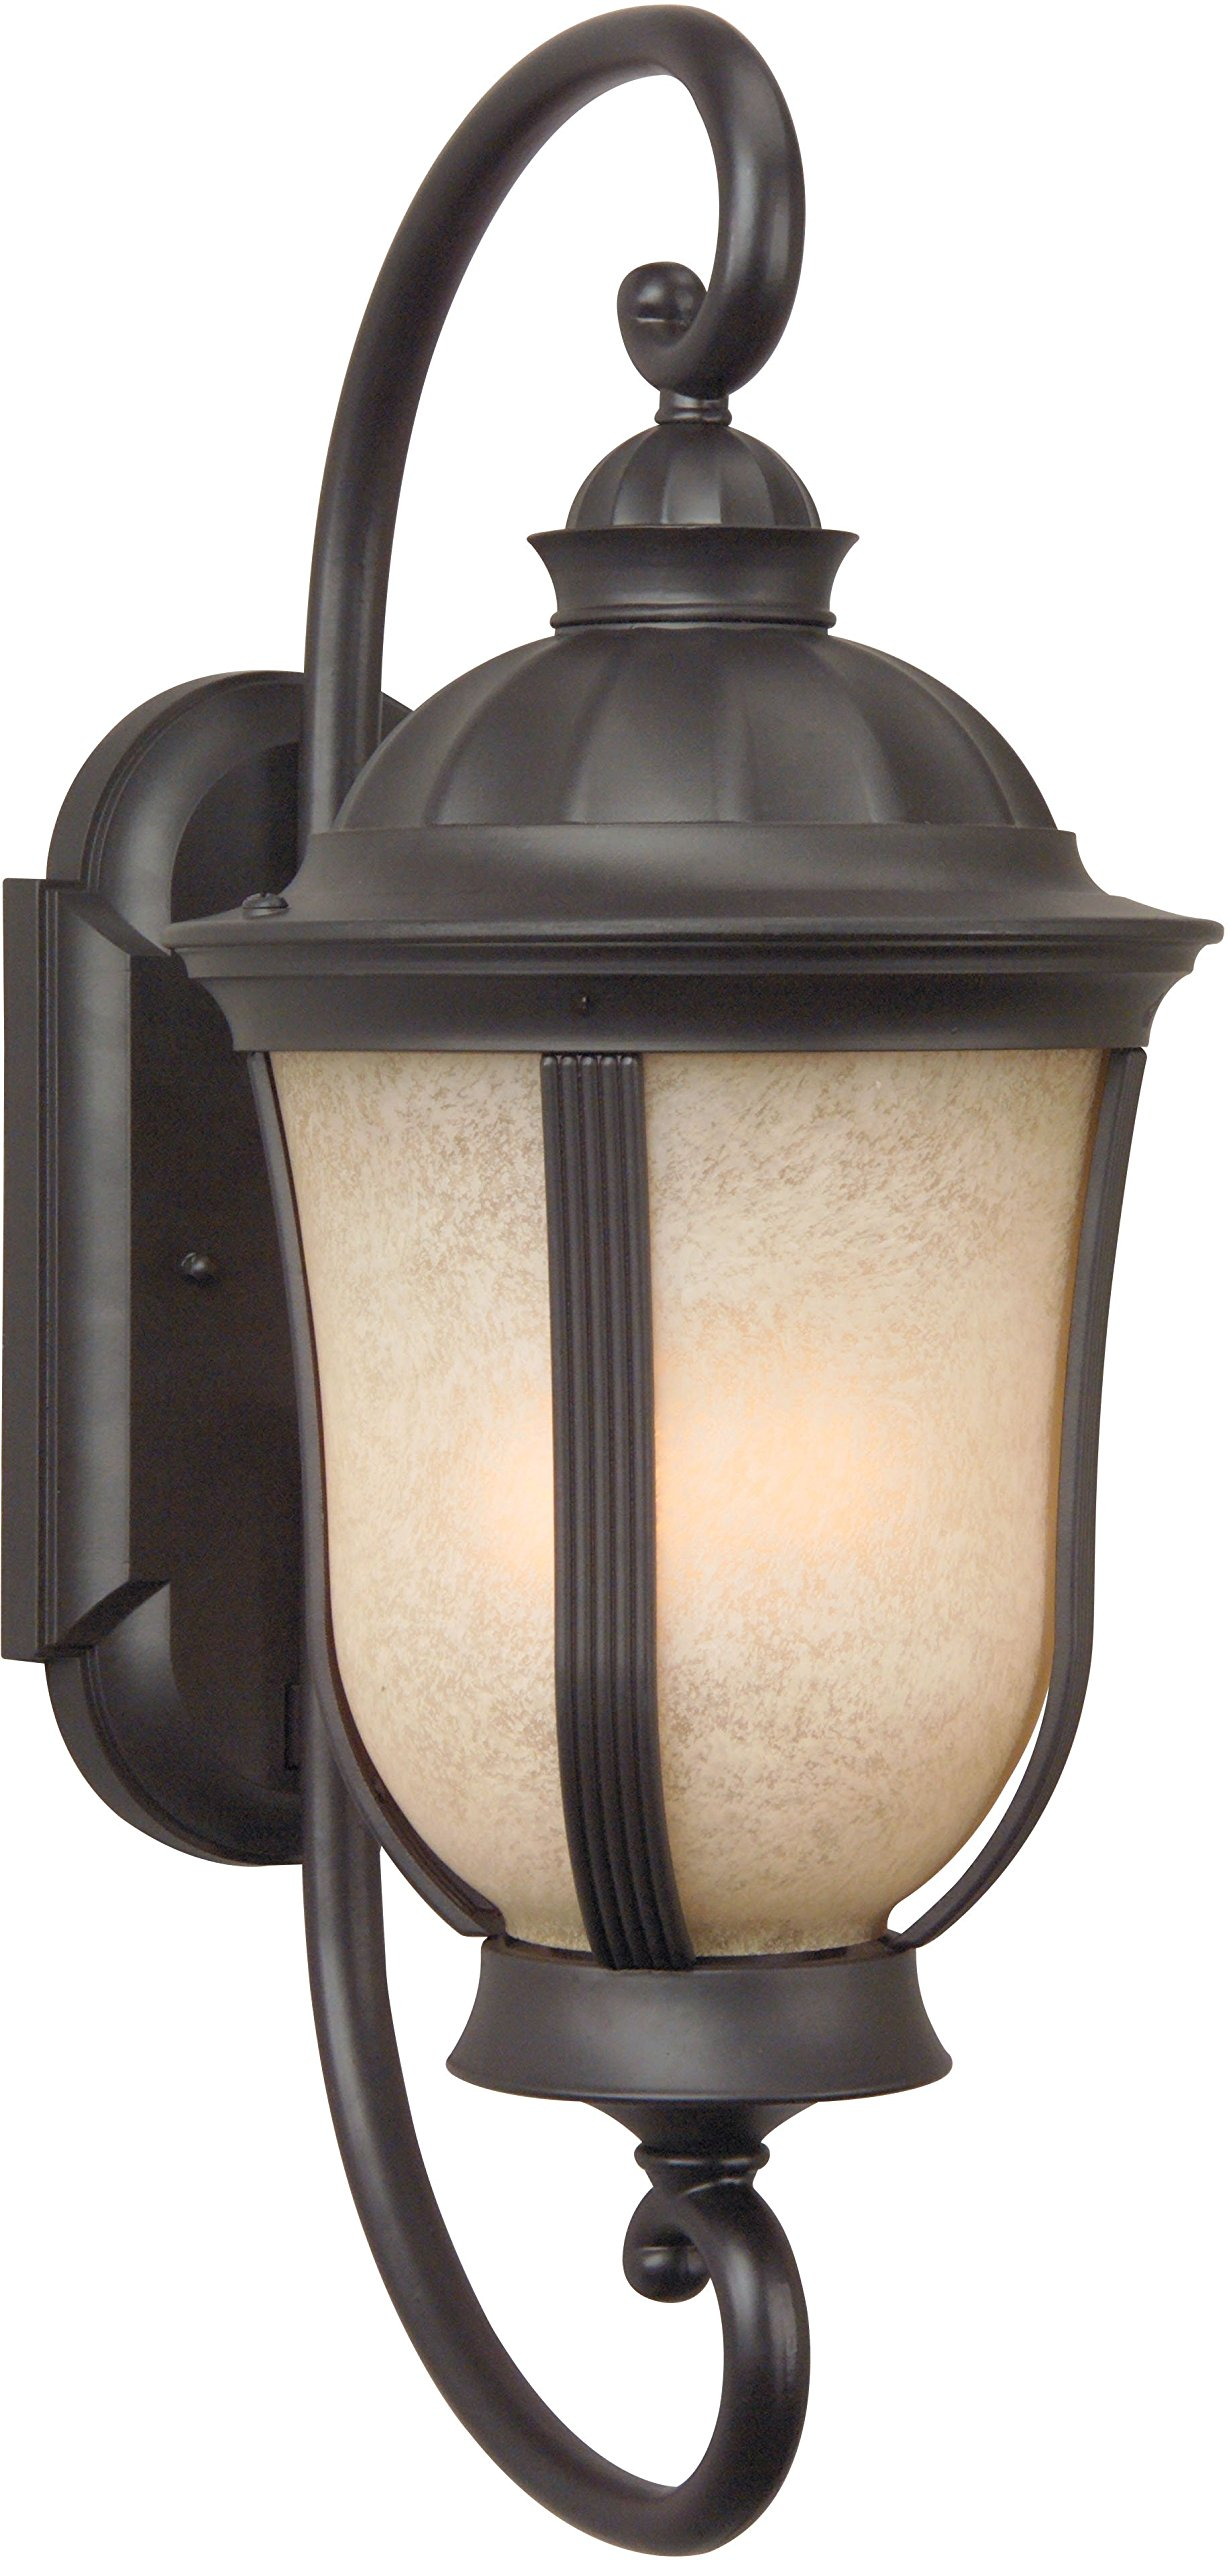 Craftmade Z6120-92-NRG Wall Lantern with Amber Frosted Glass Shades, Bronze Finish